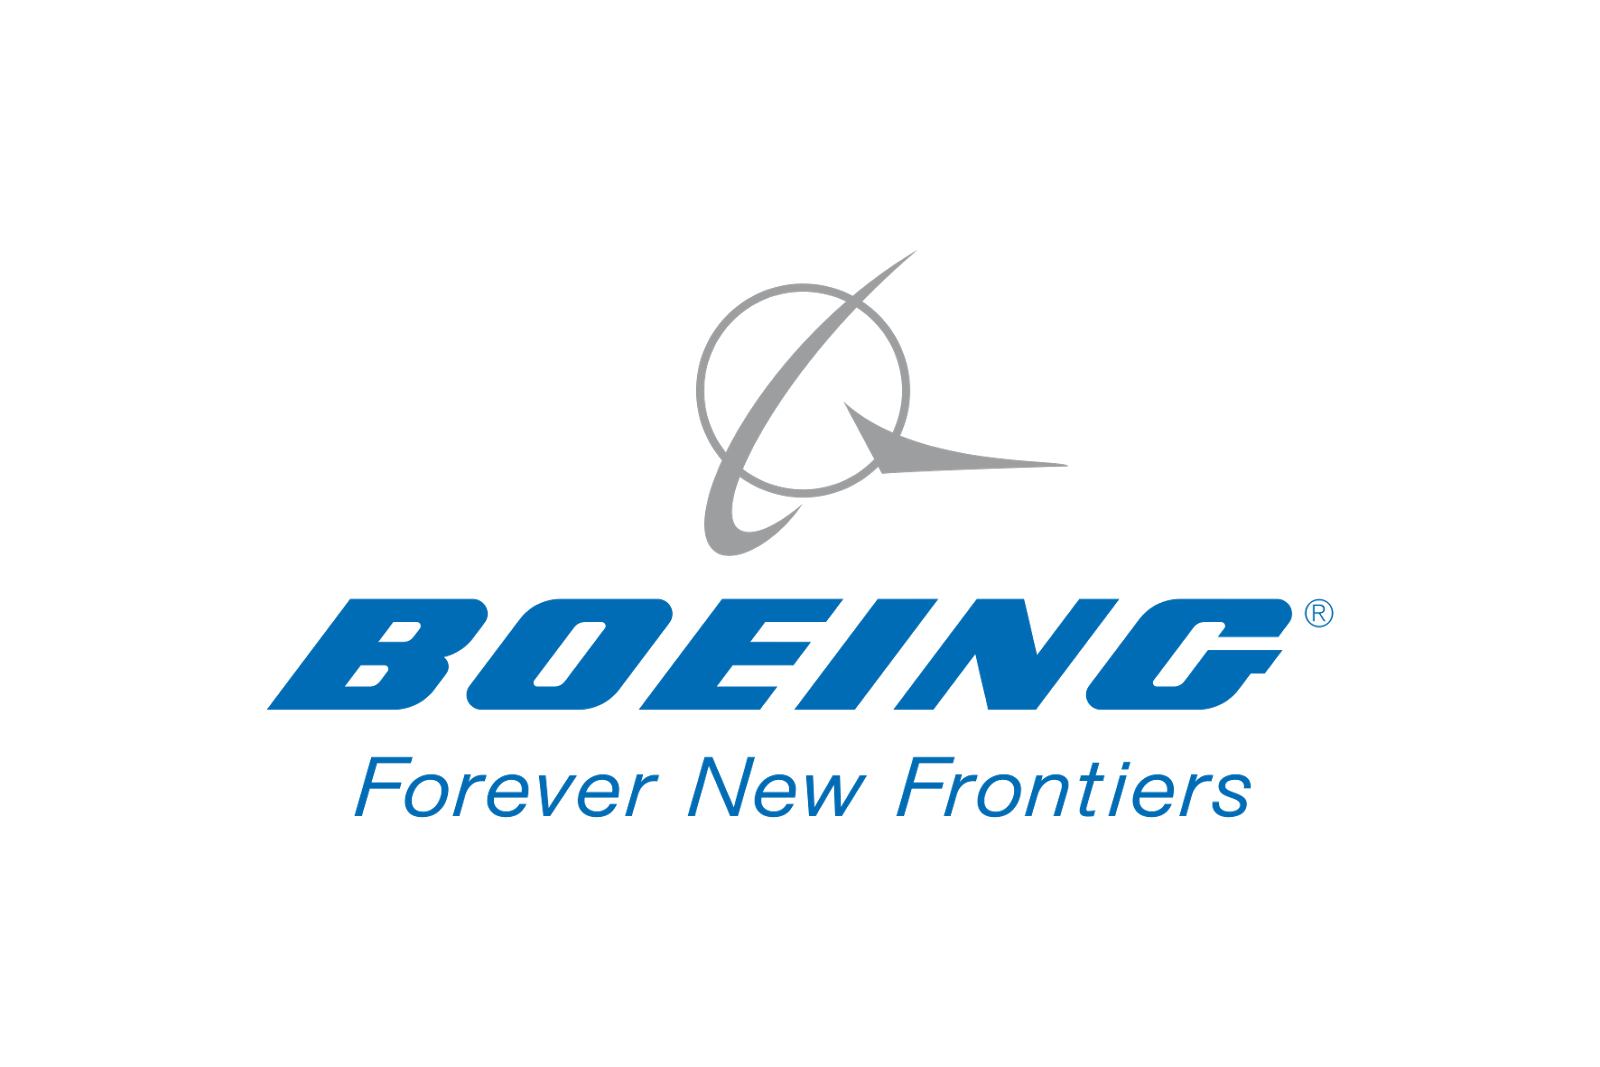 Download Boeing Logo PNG-PlusPNG pluspng.com-1600 - Download Boeing Logo PNG - Artfoto Logo PNG